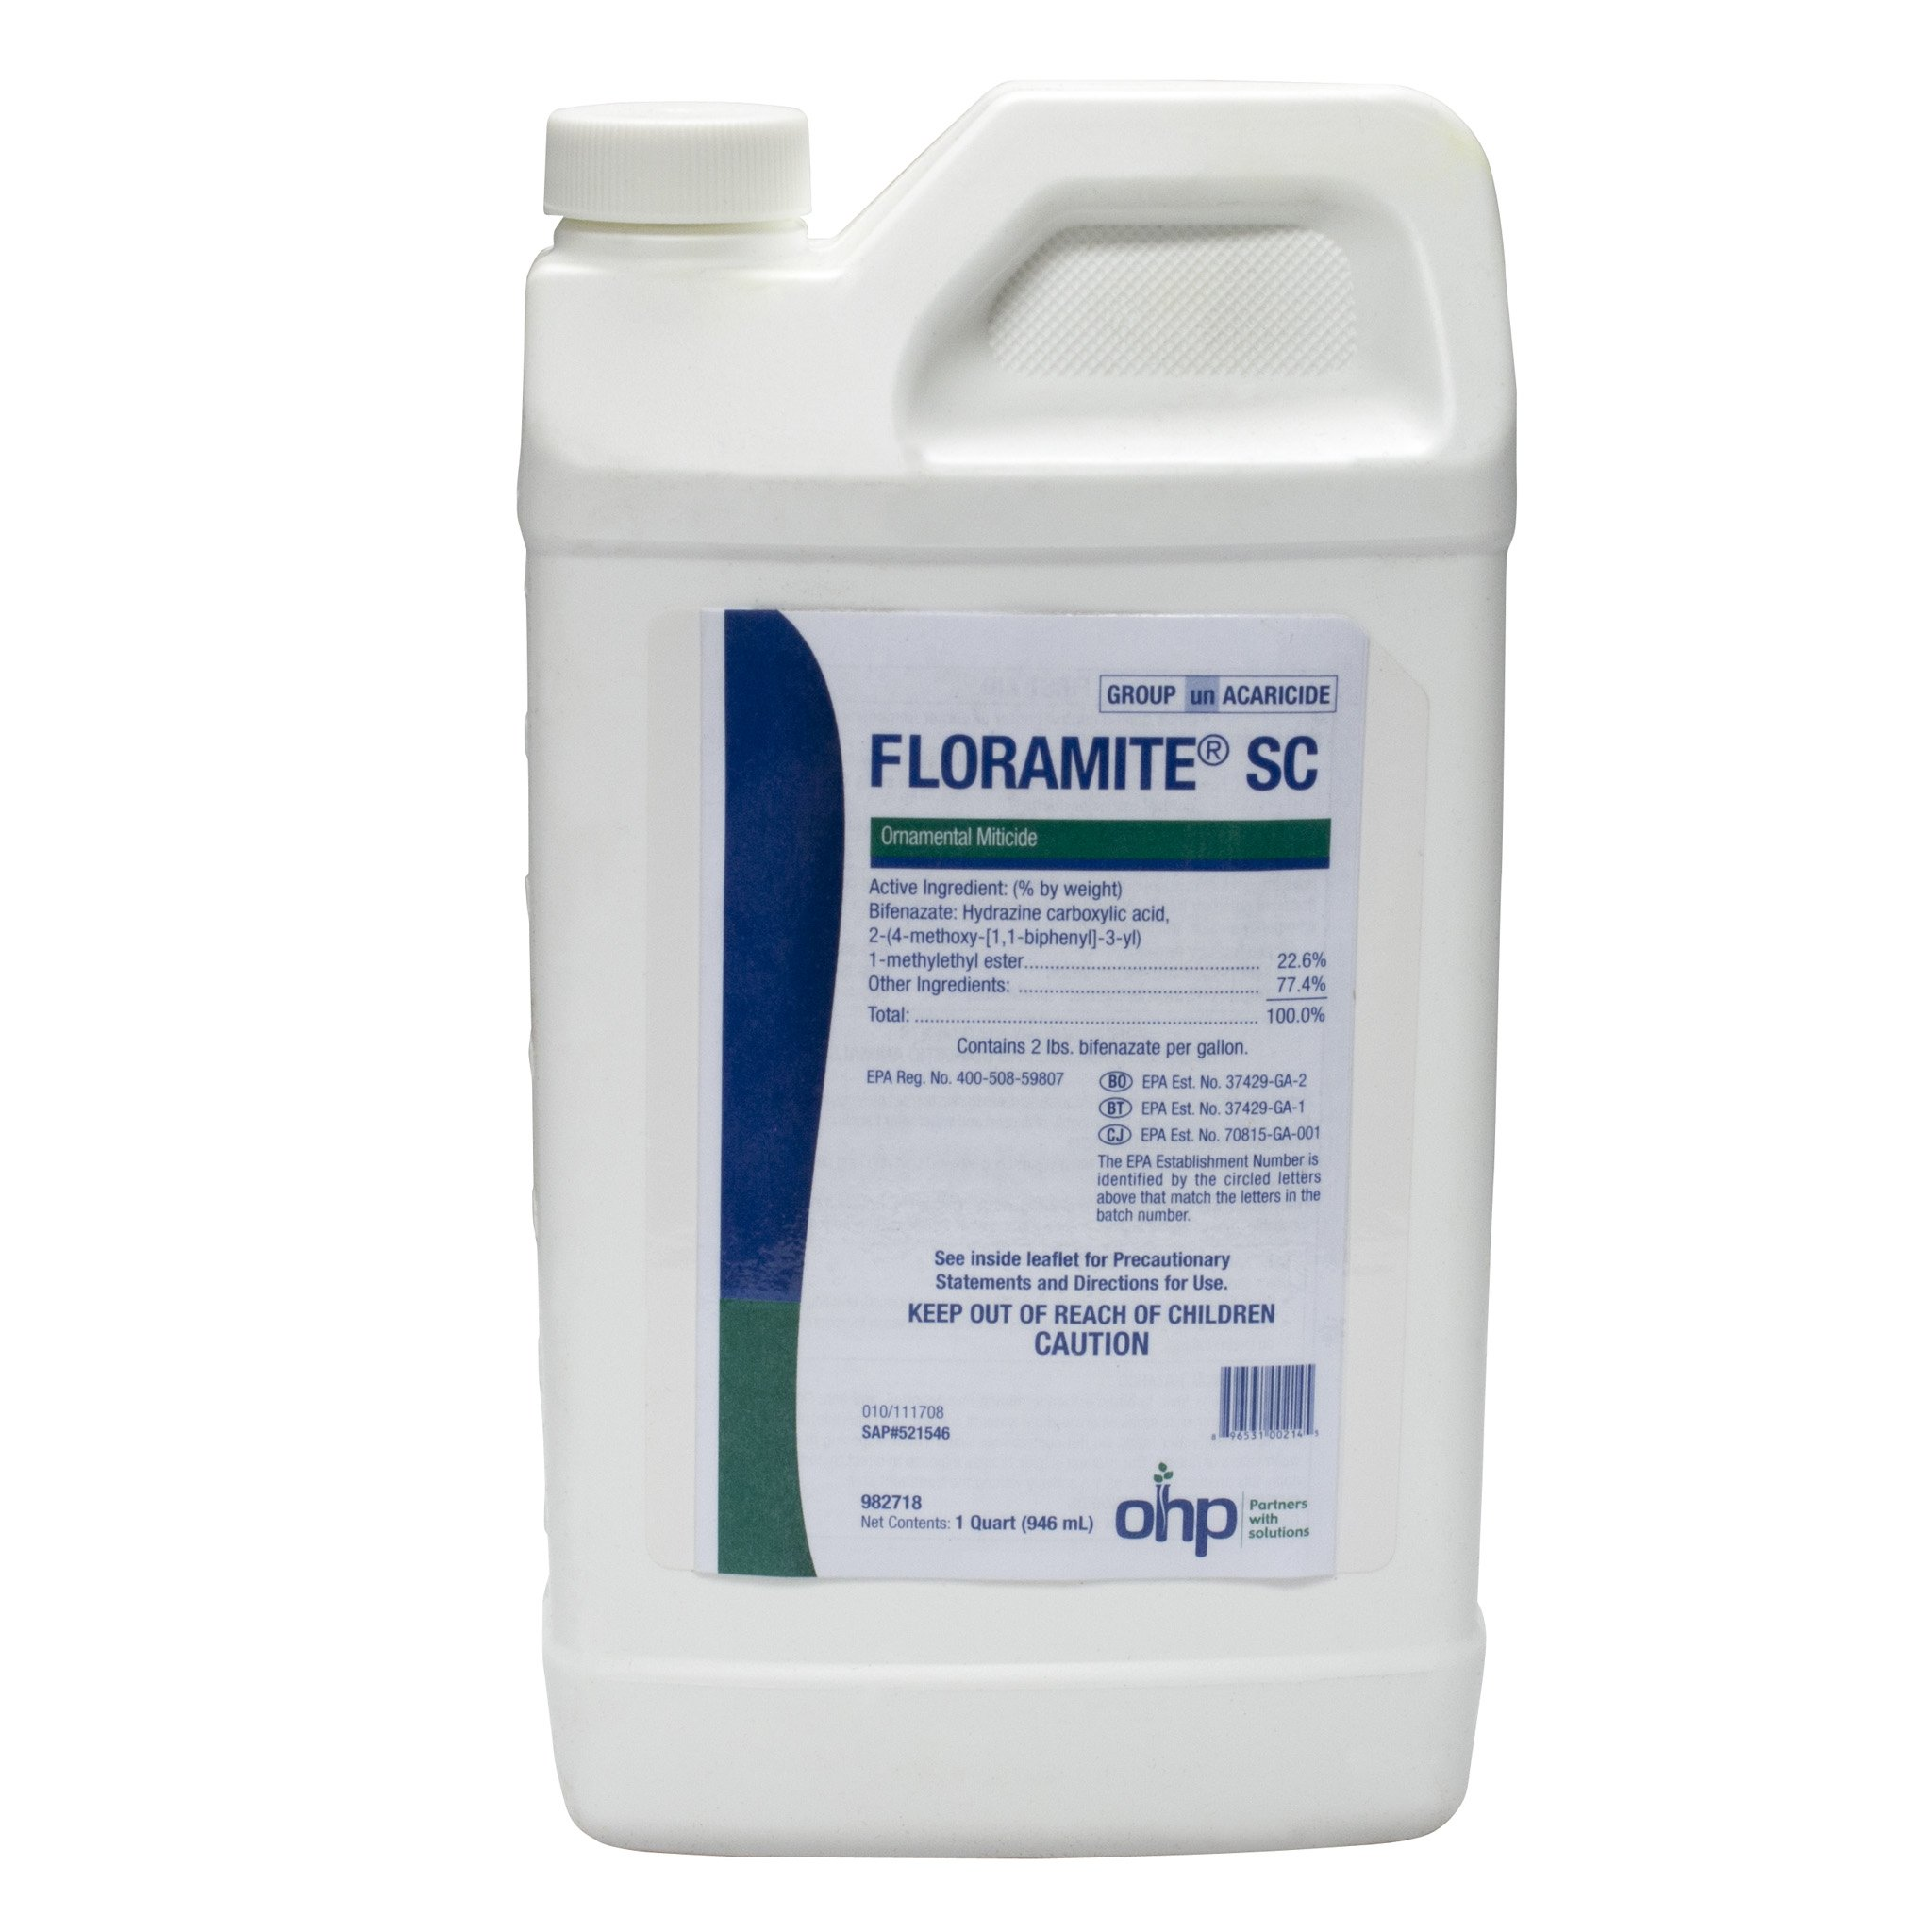 Floramite SC Ornamental Miticide - Spider Mite Control - 1 Quart Bottles by OHP